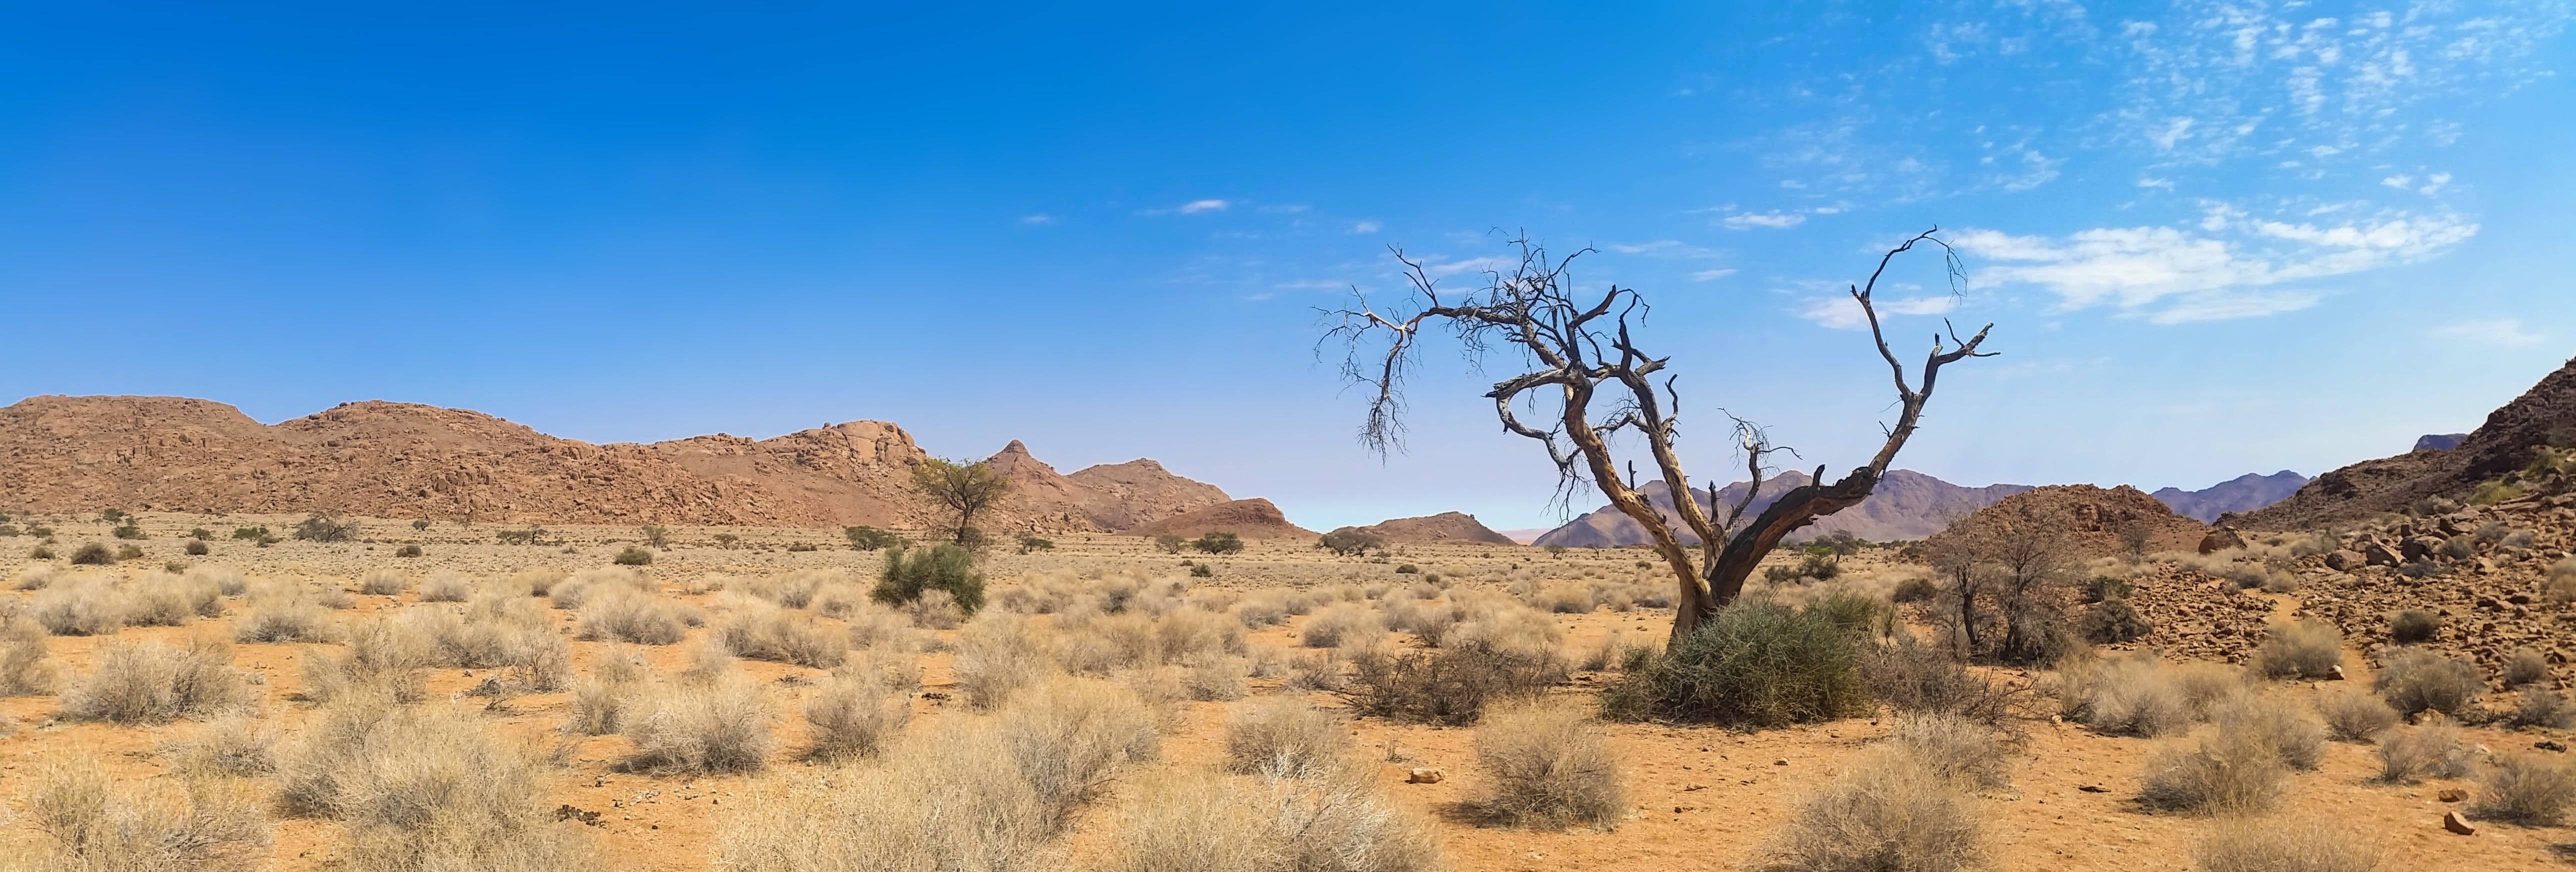 Bare Tree on Desert Land